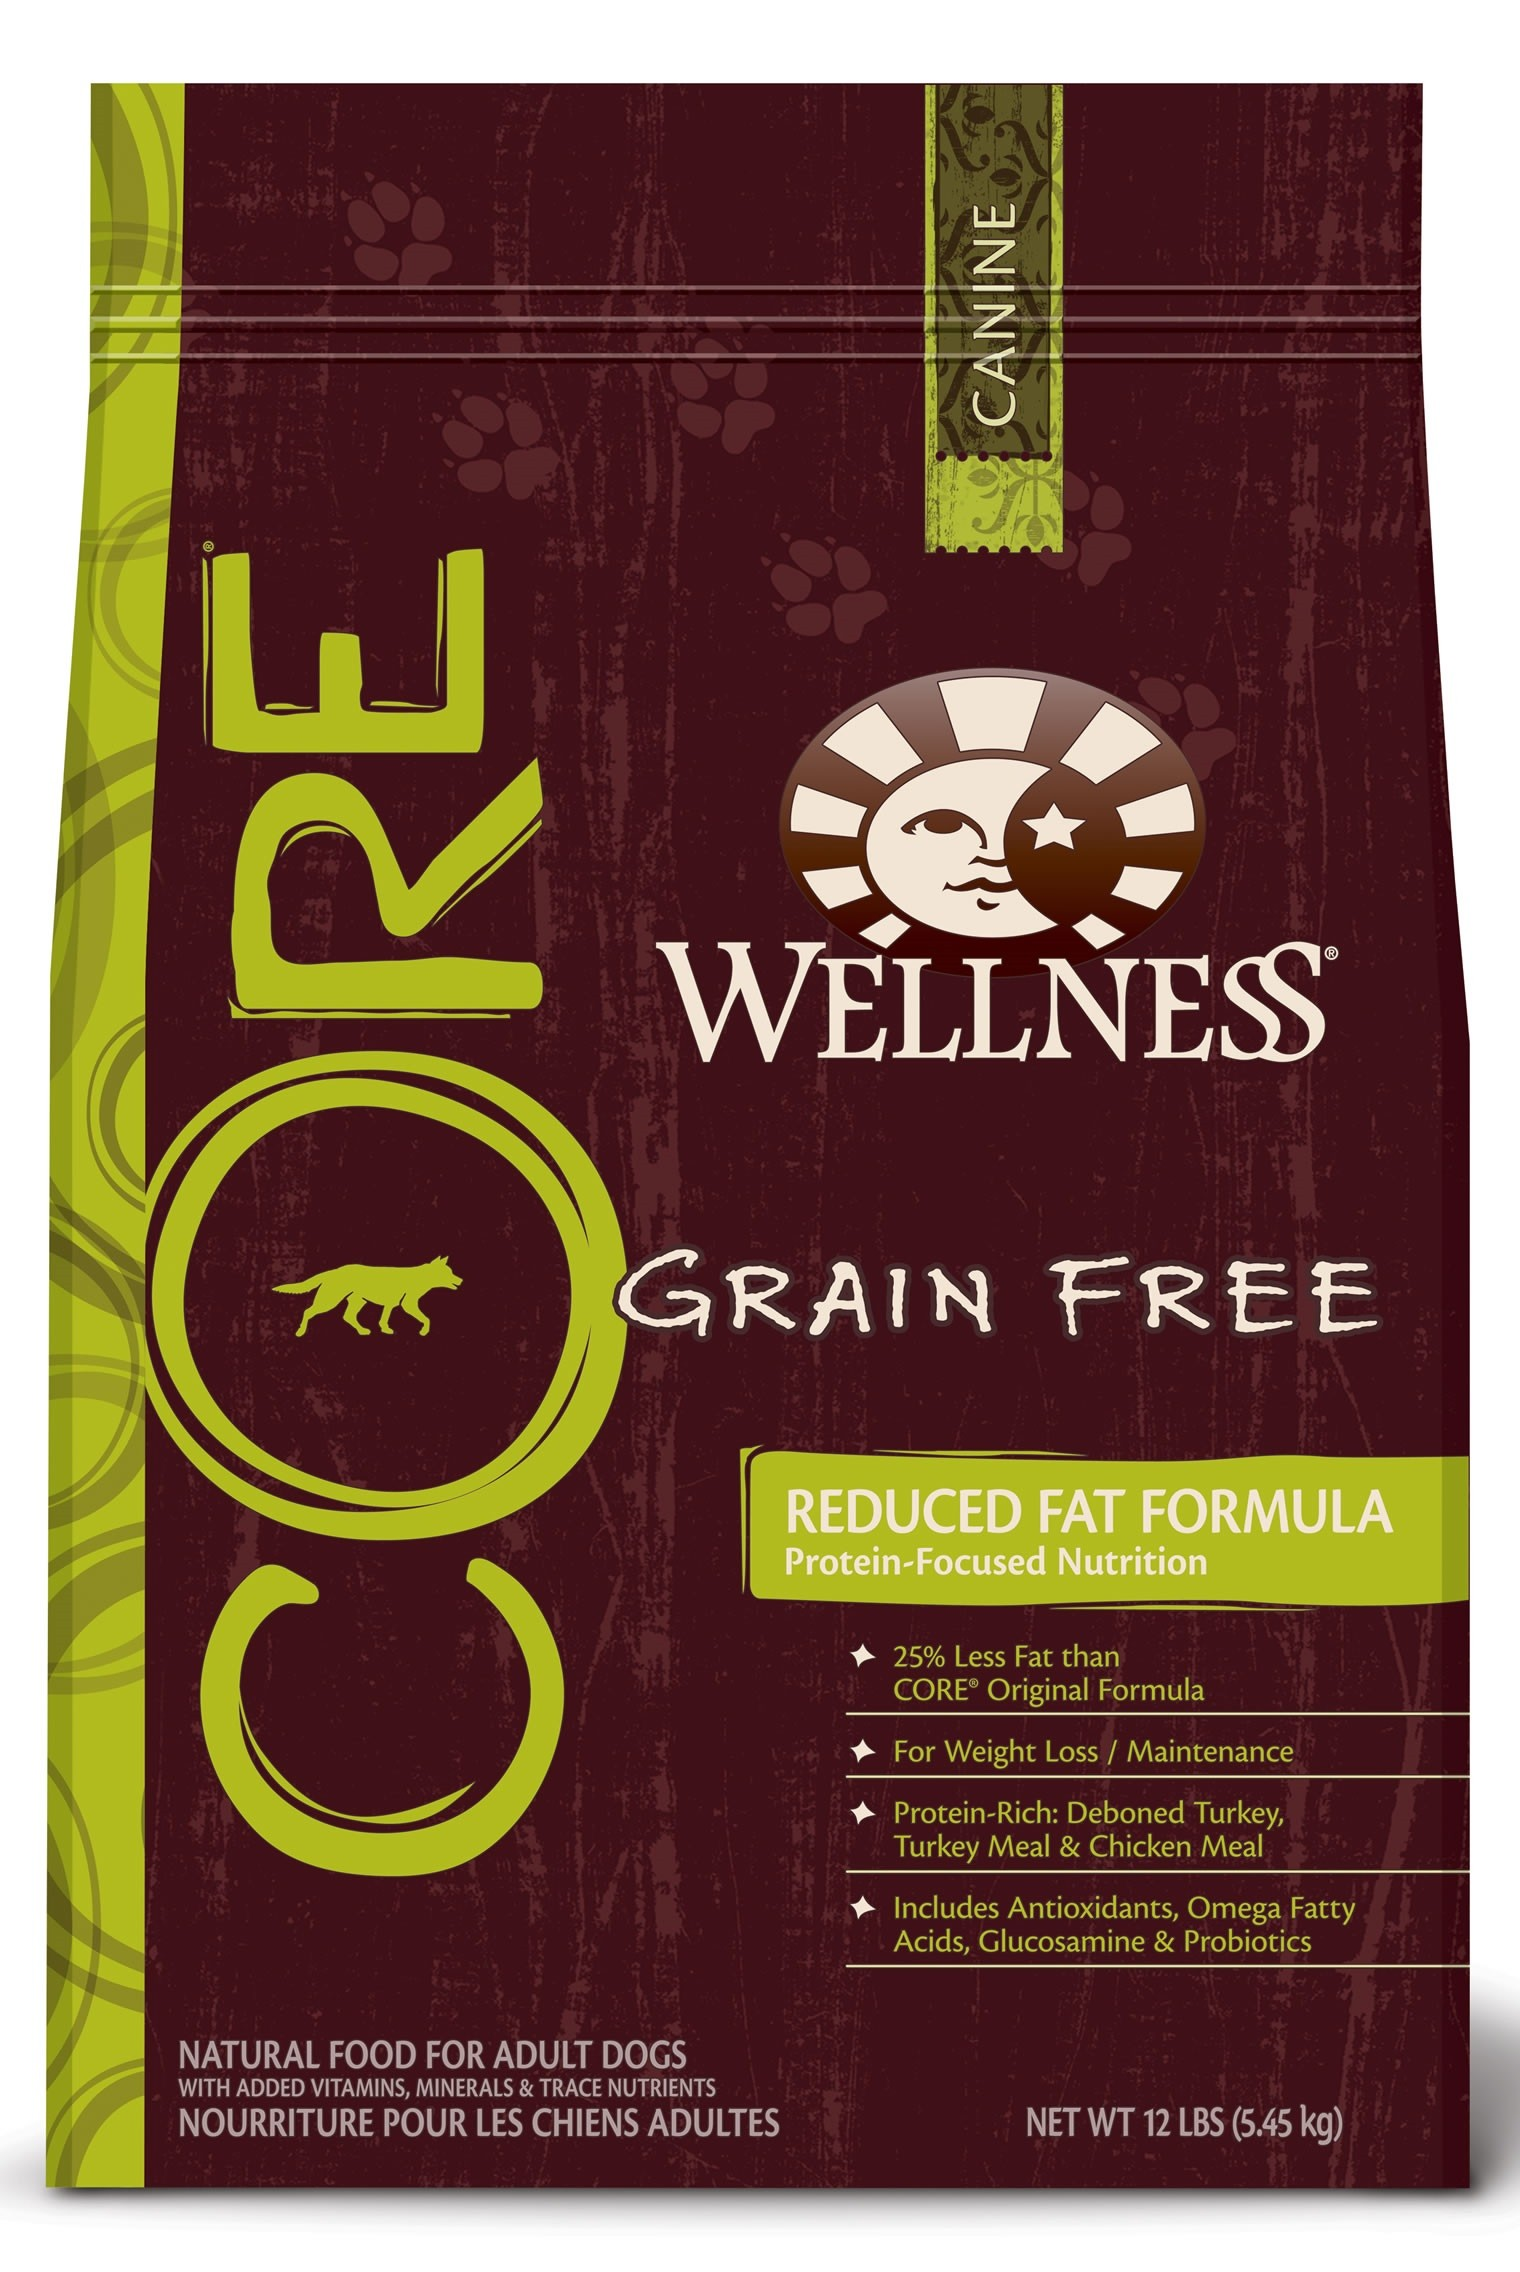 CORE Grain-Free Reduced Fat